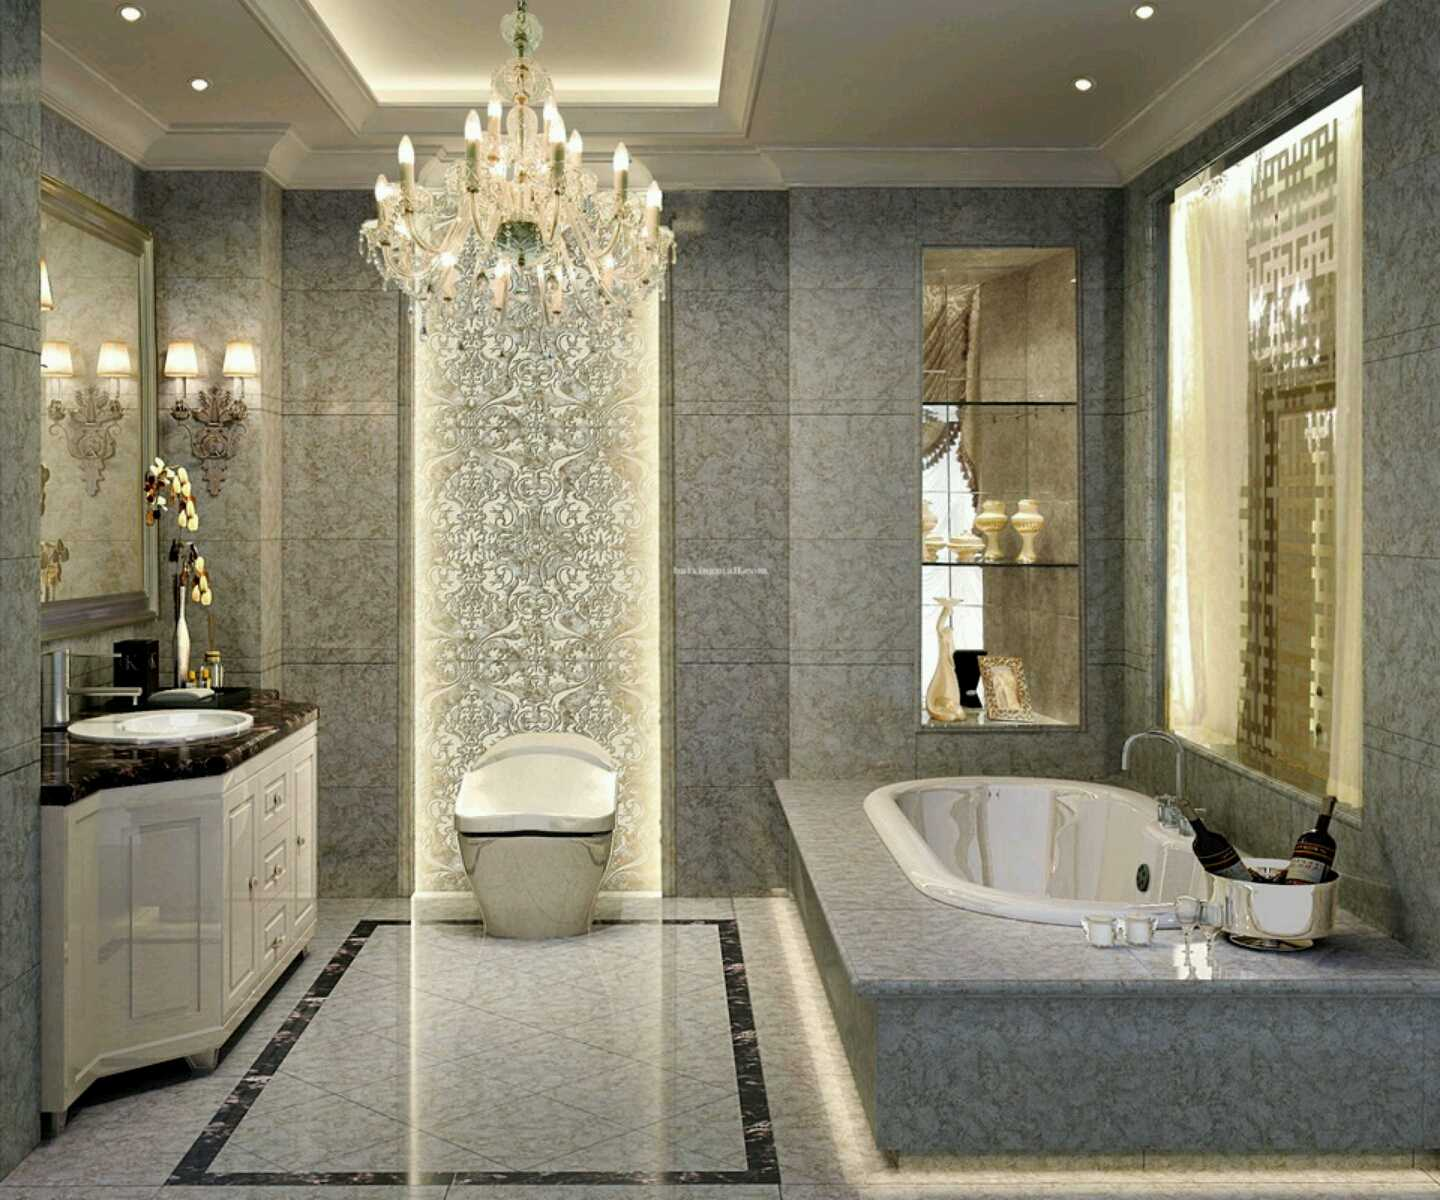 Luxury Bathroom Design 14 Luxury Small But Functional Bathroom Design Ideas